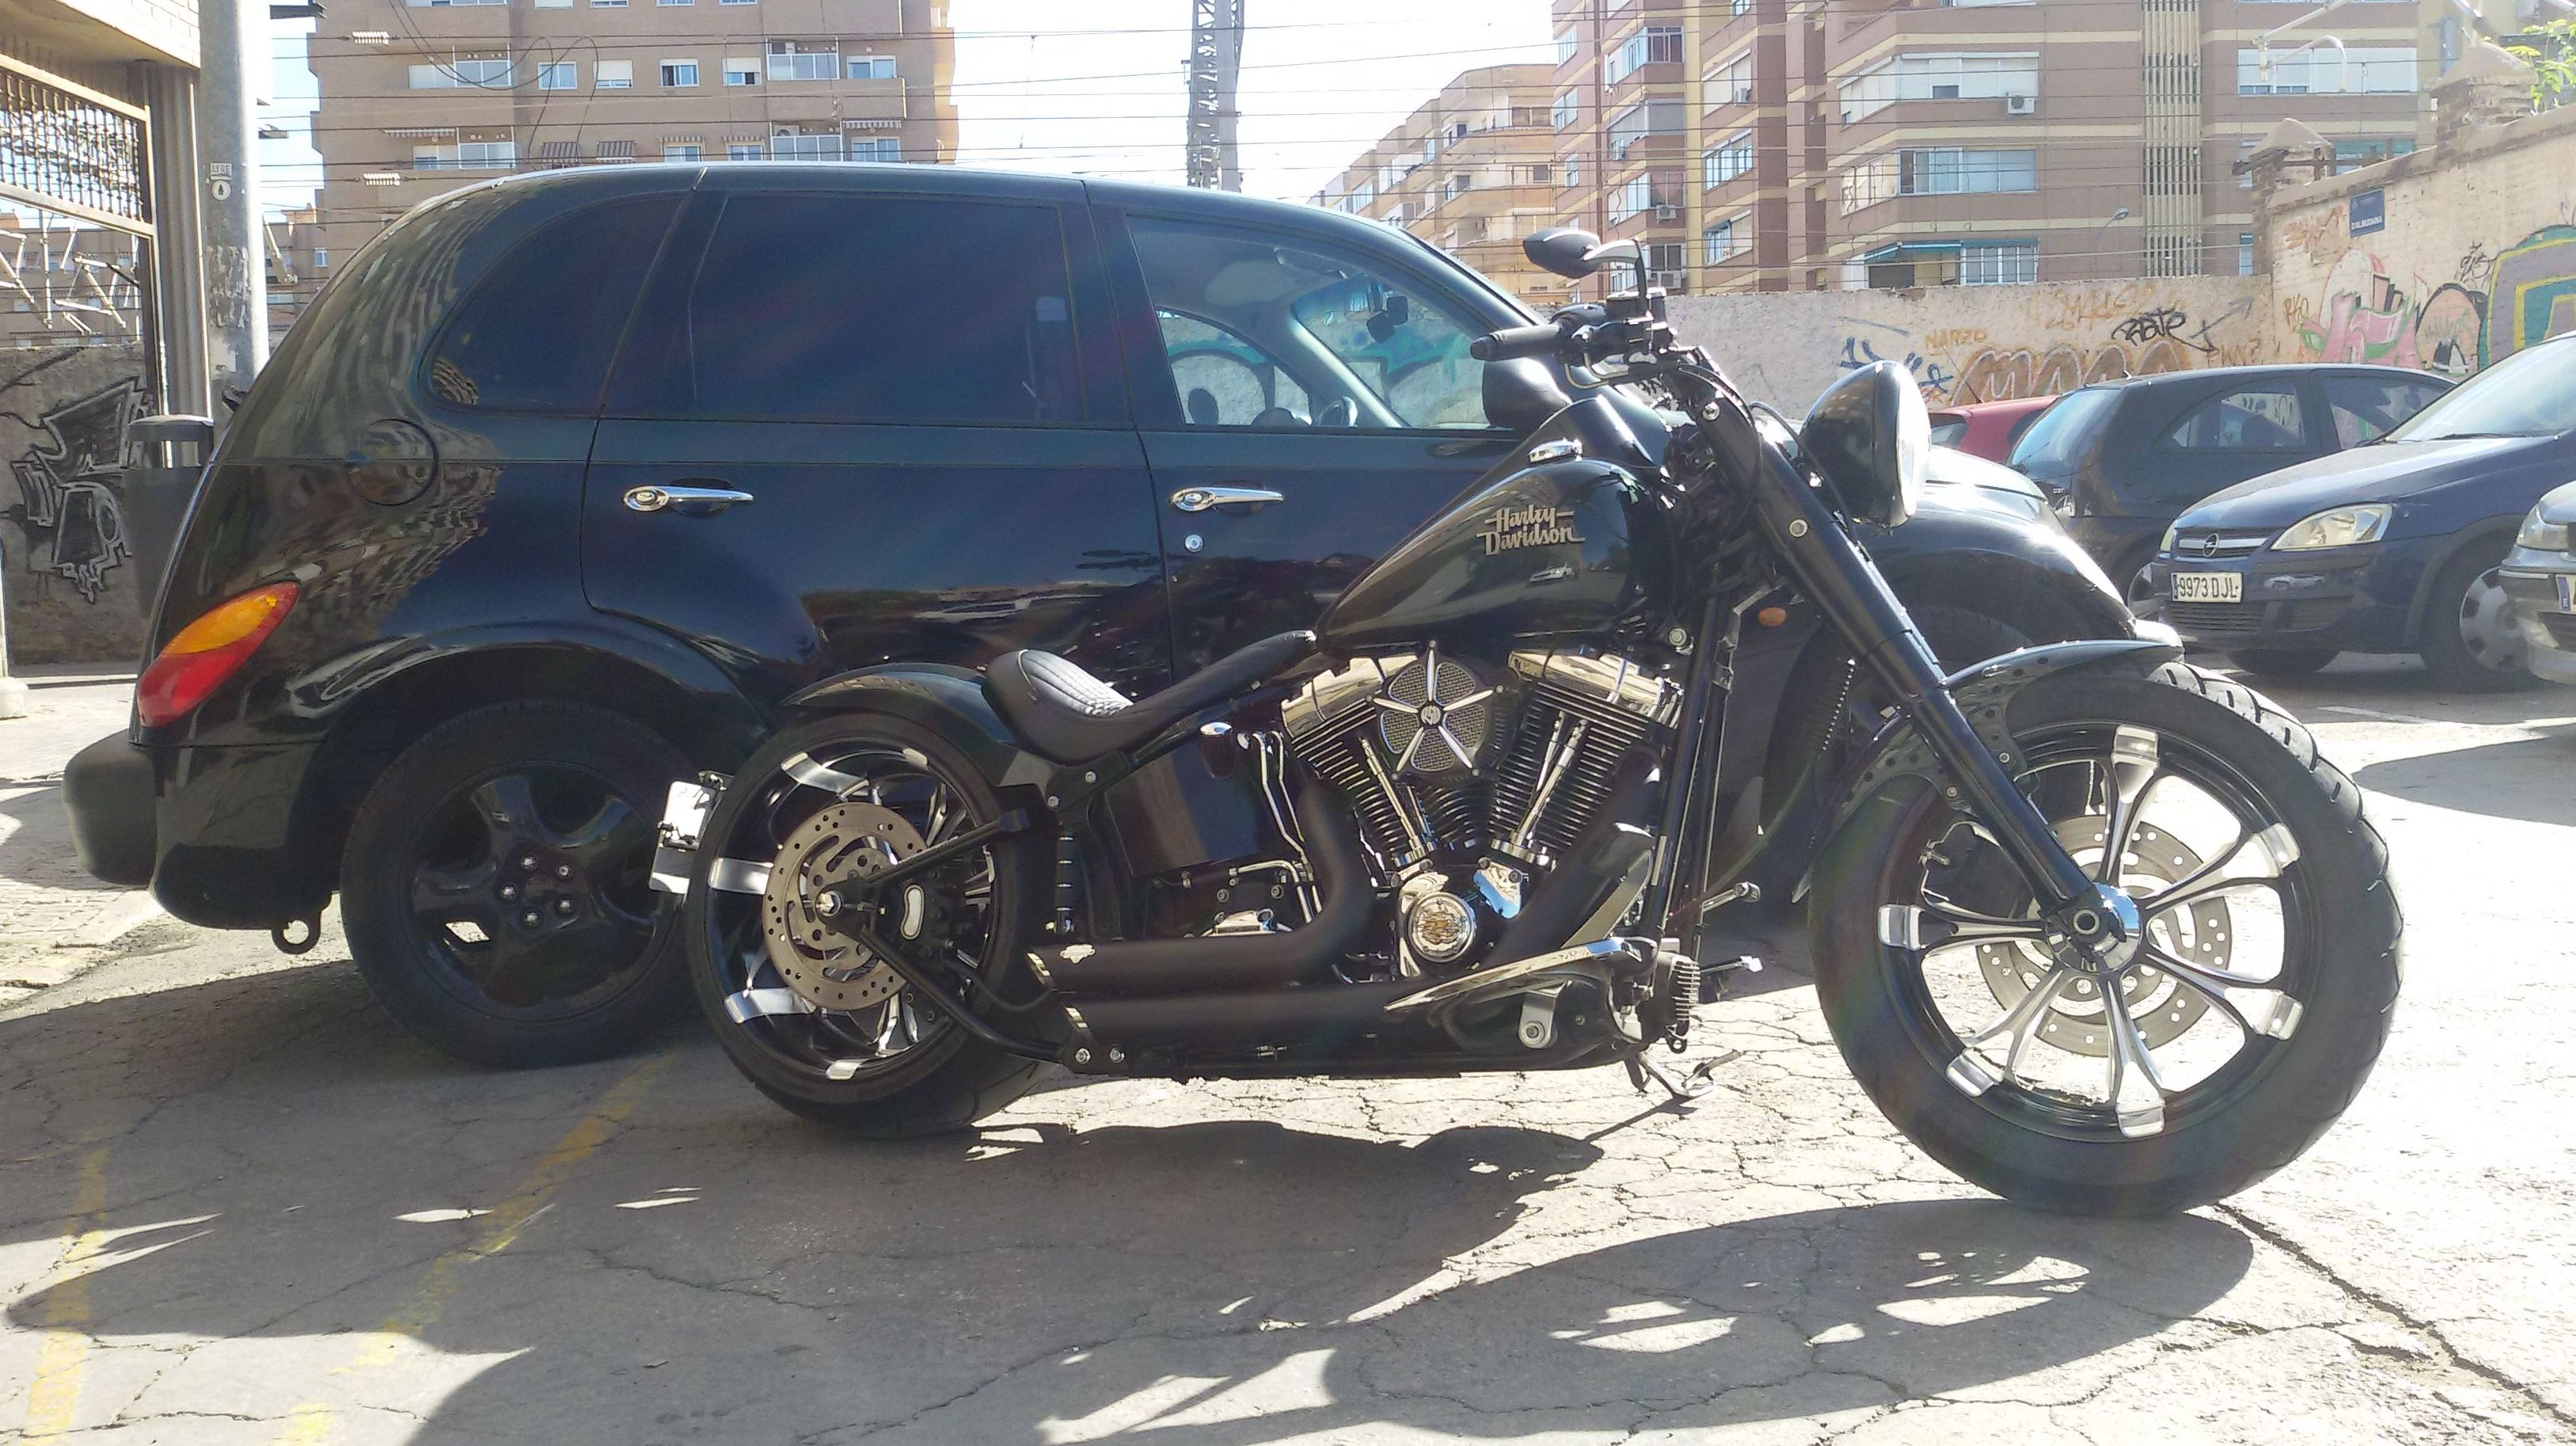 cars  & bikes ,  transfornacion  de vehiculos, custom